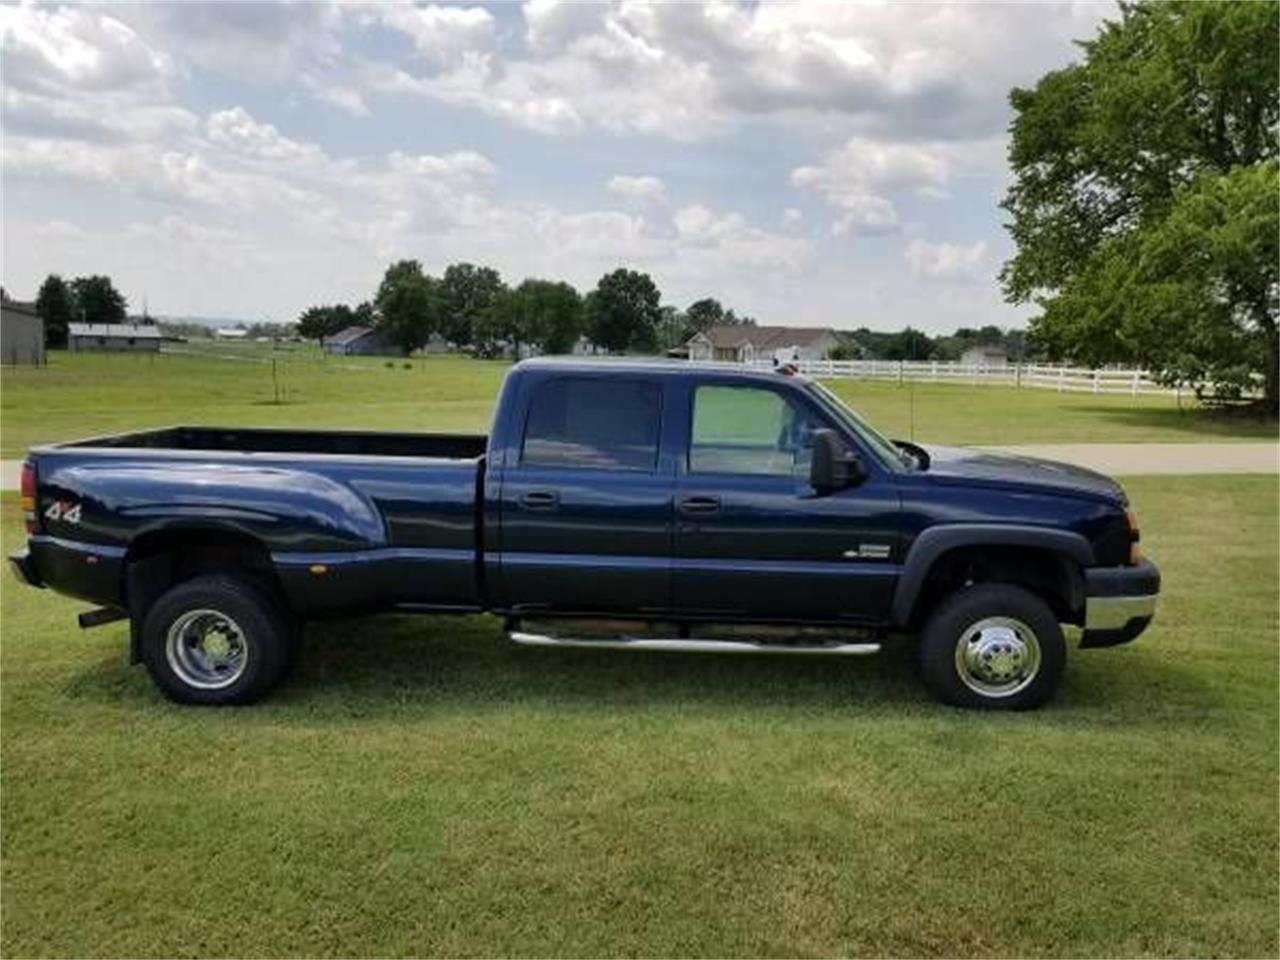 Large Picture of '06 Chevrolet Silverado located in Cadillac Michigan - $19,895.00 Offered by Classic Car Deals - QPHO